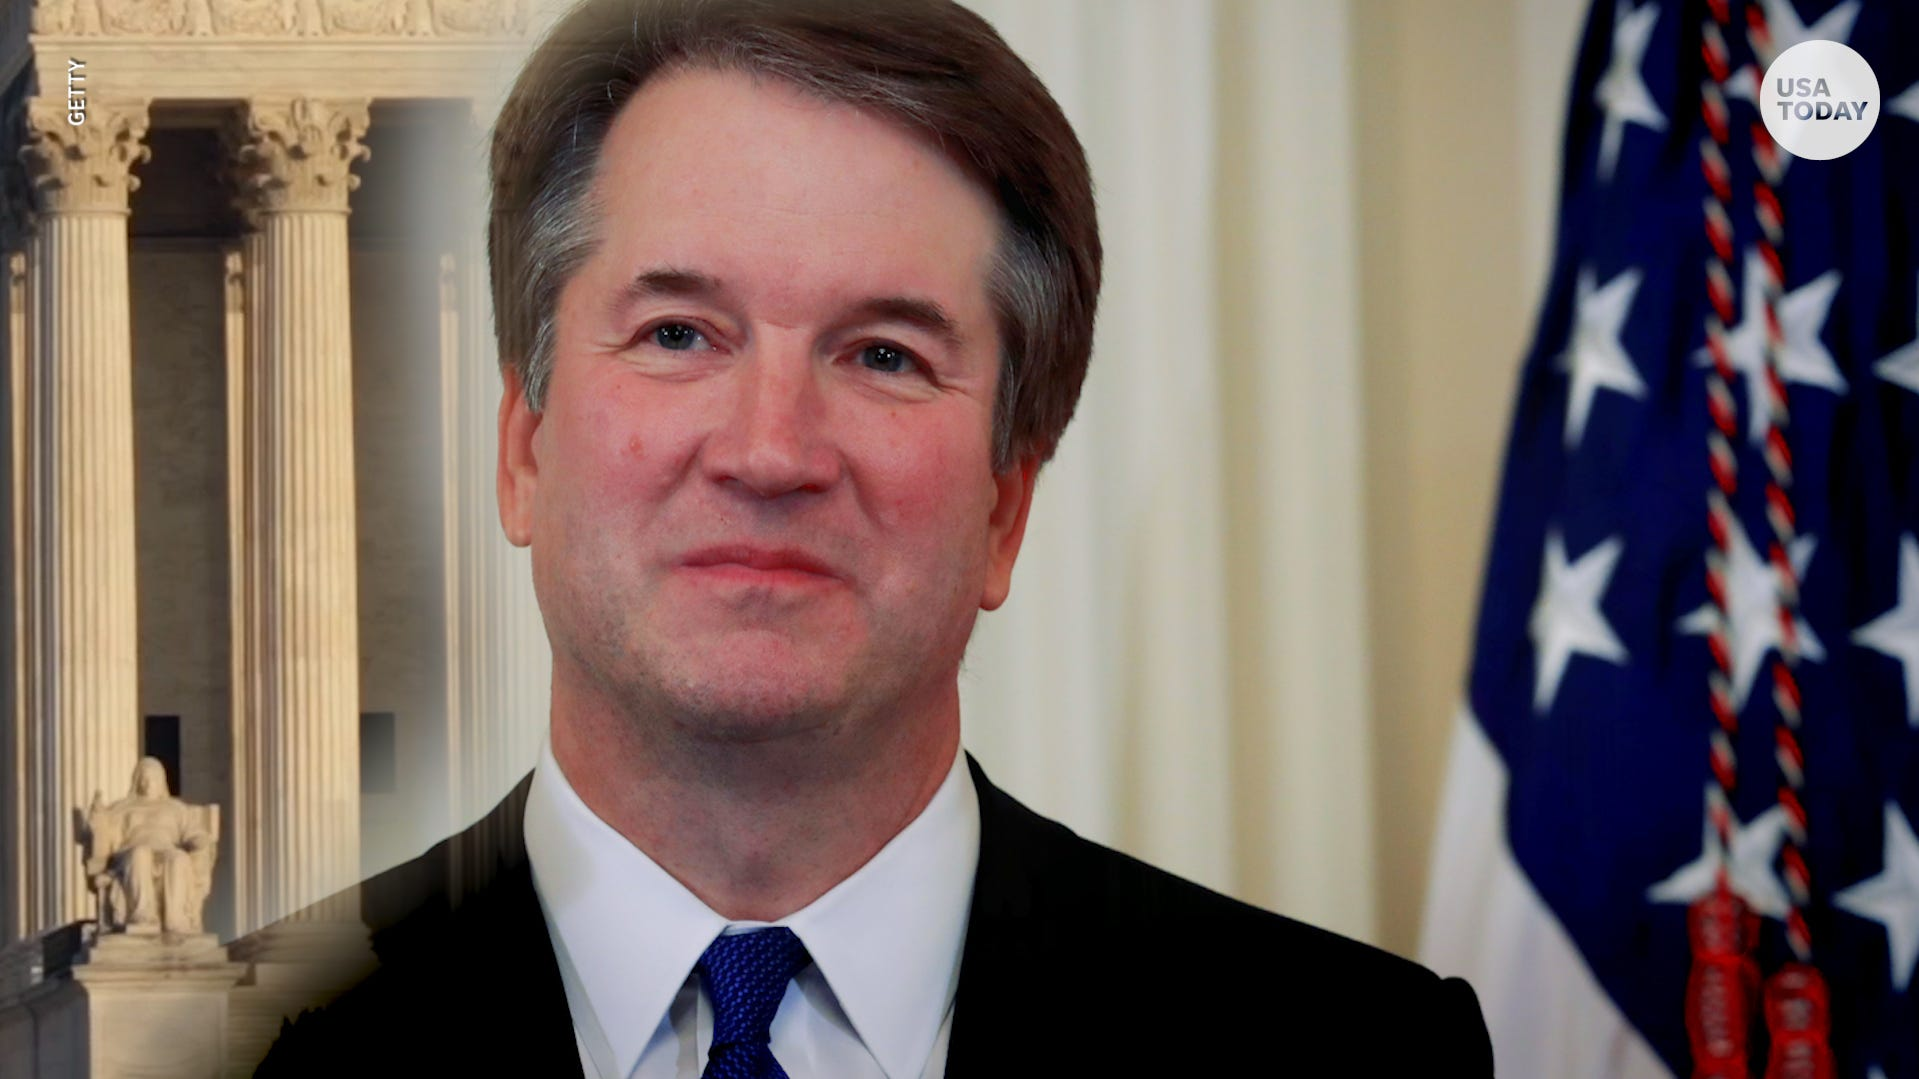 Witches plan to hex Brett Kavanaugh using effigies, coffin nails, graveyard dirt and more